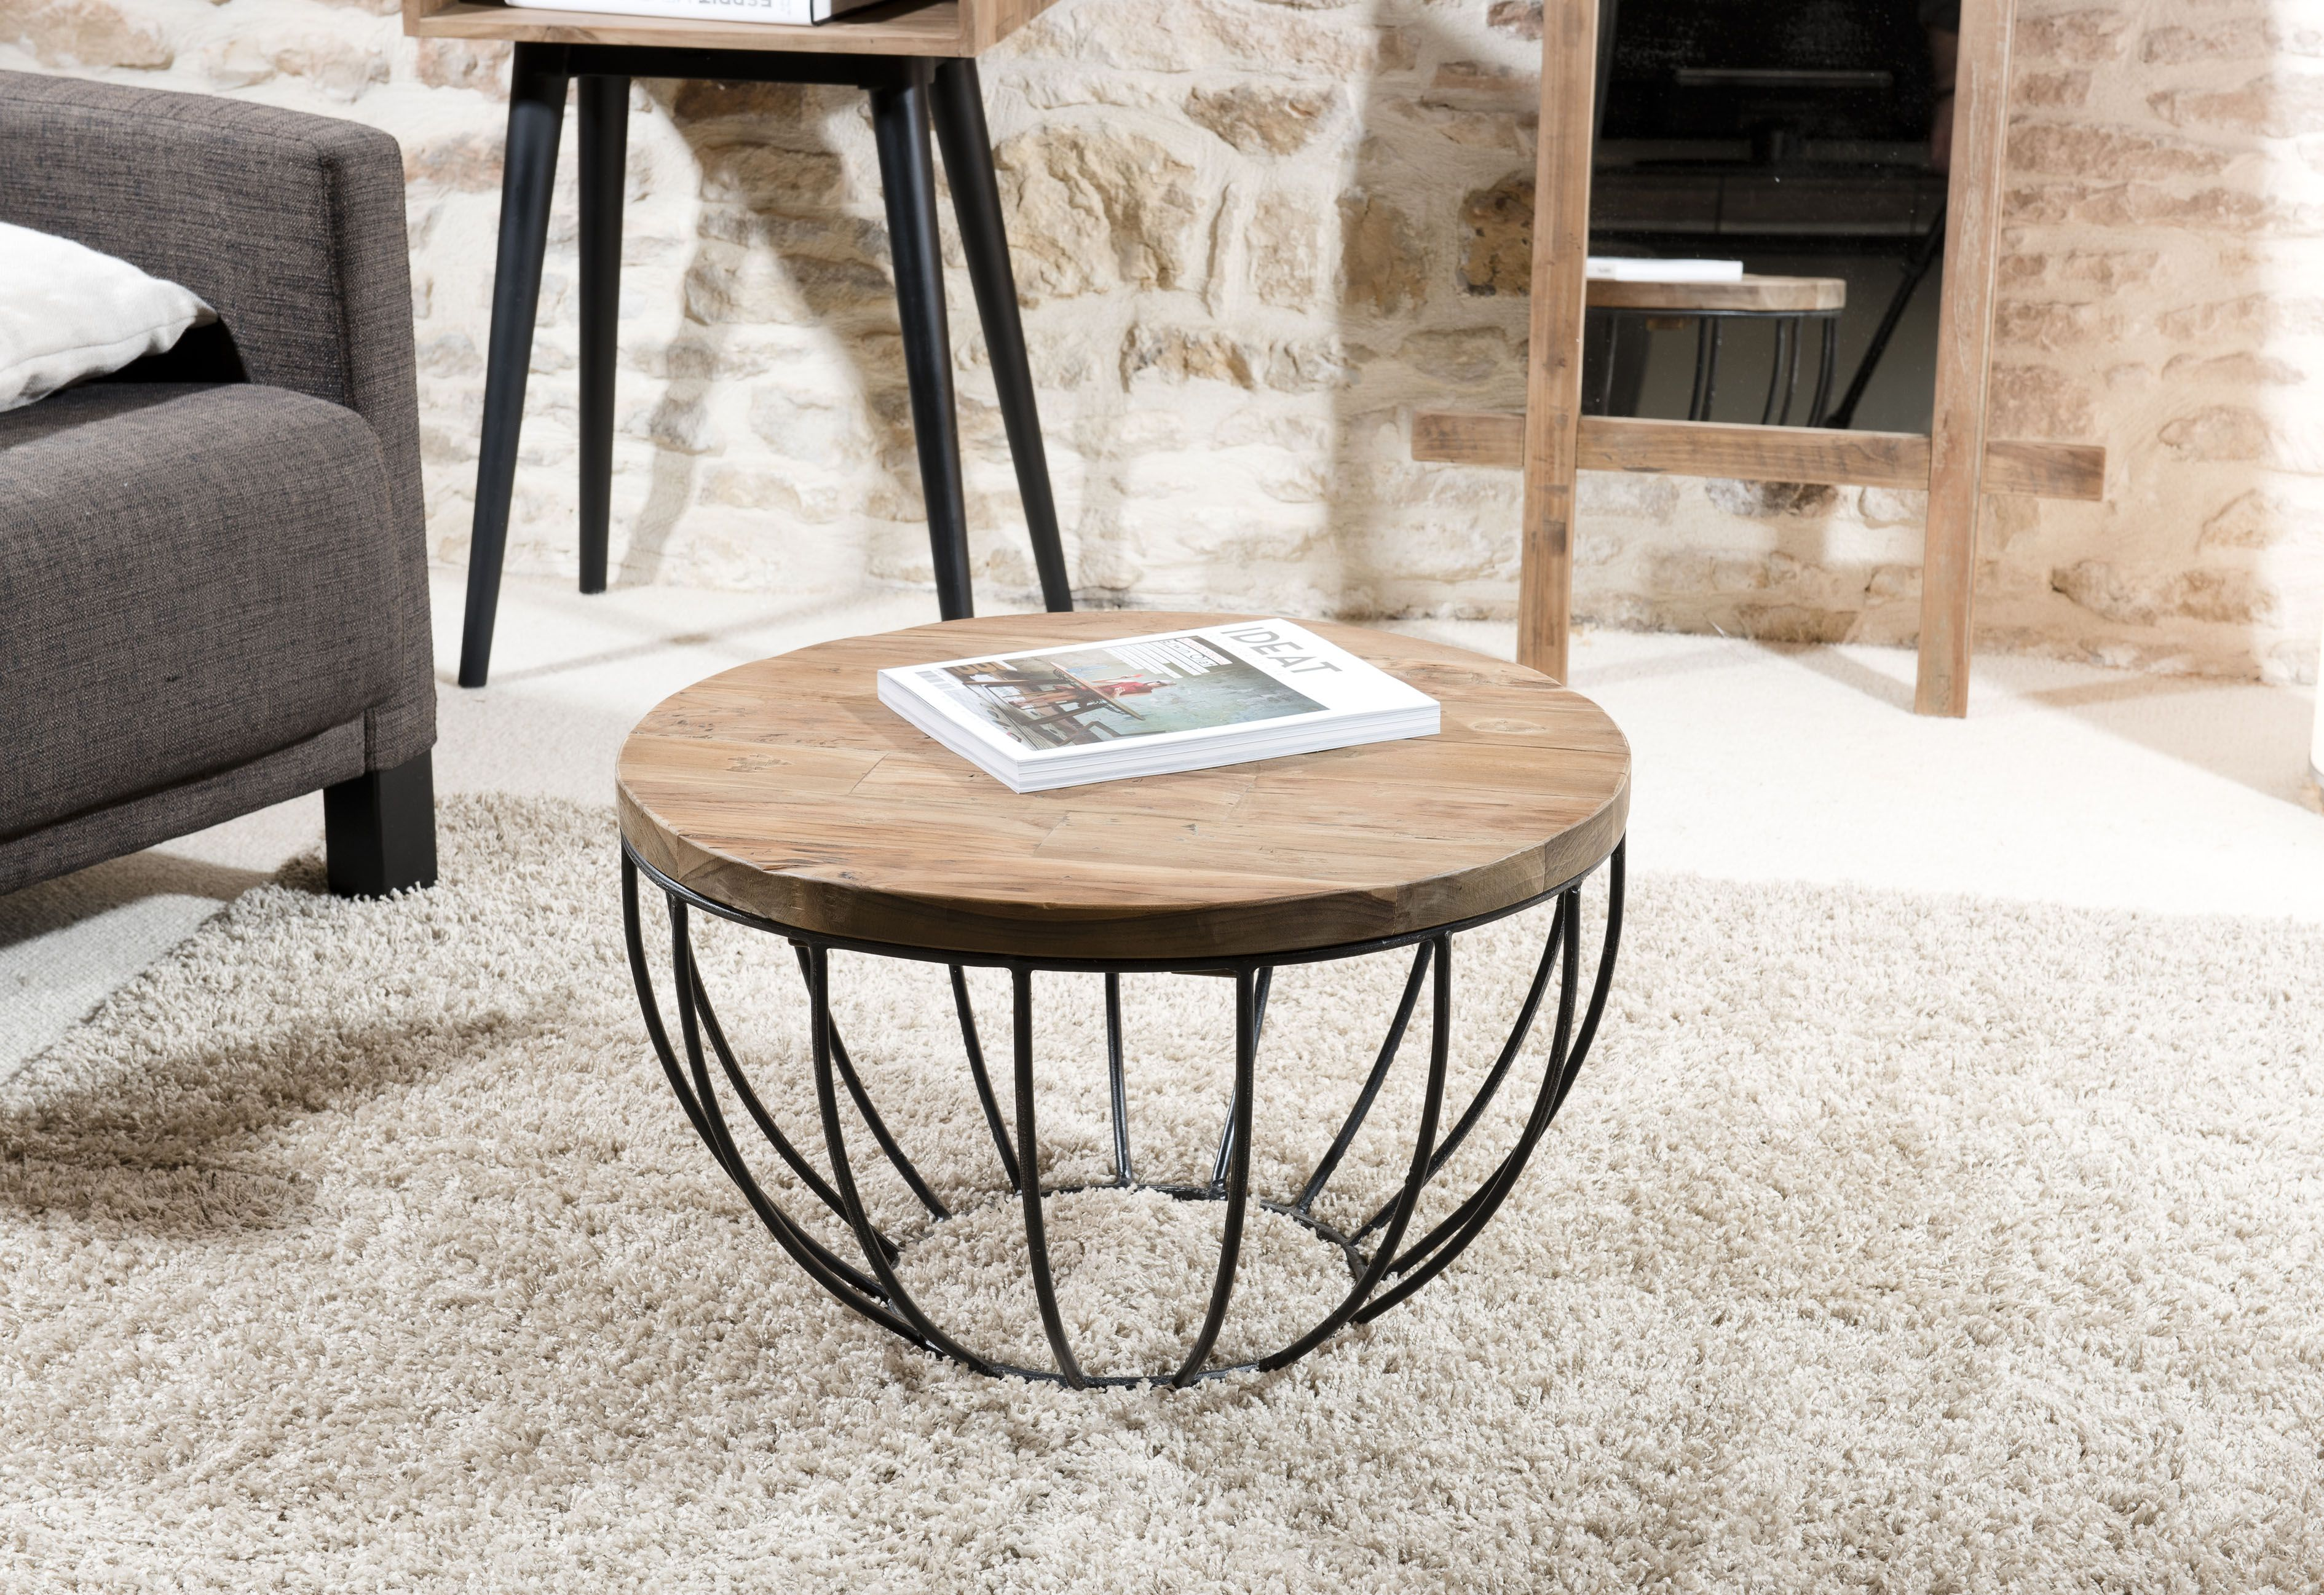 Petite Table Basse Ronde Teck Recycle Structure Filaire Noire Swing Petite Table Basse Ronde Table Basse Table Basse Ronde